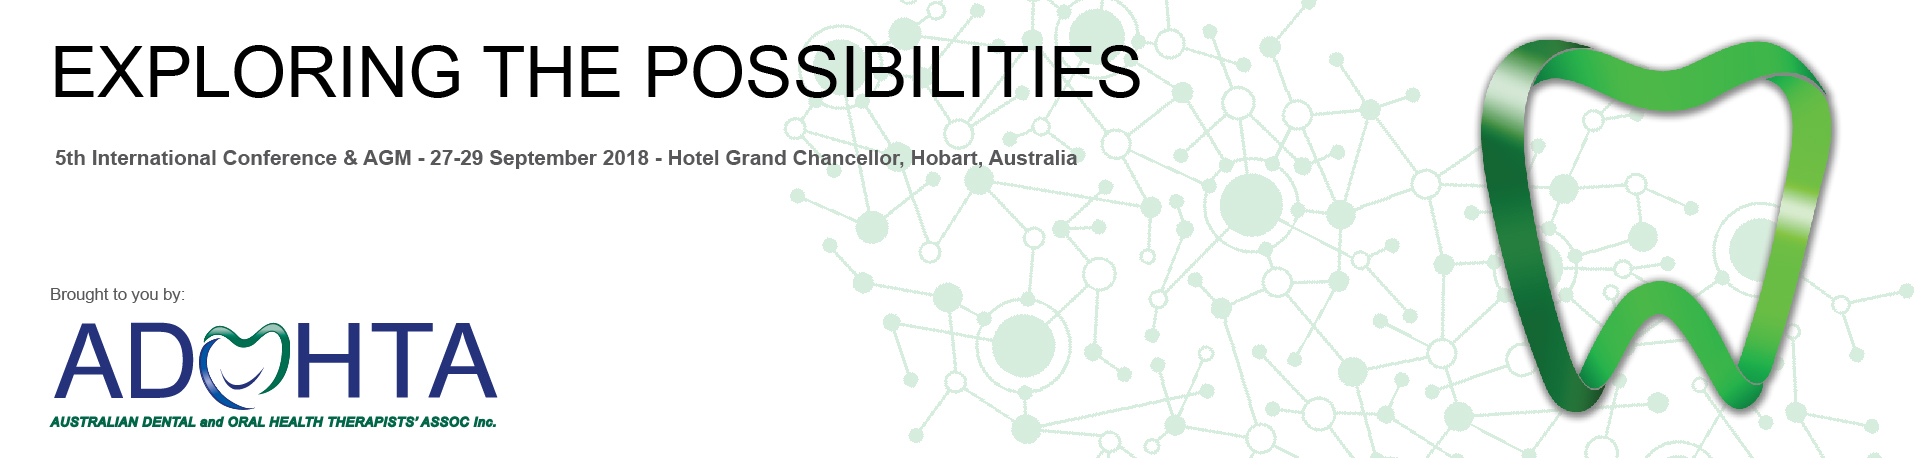 2018 ADOHTA Inc | 5th International Conference & AGM | Exploring the Possibilities